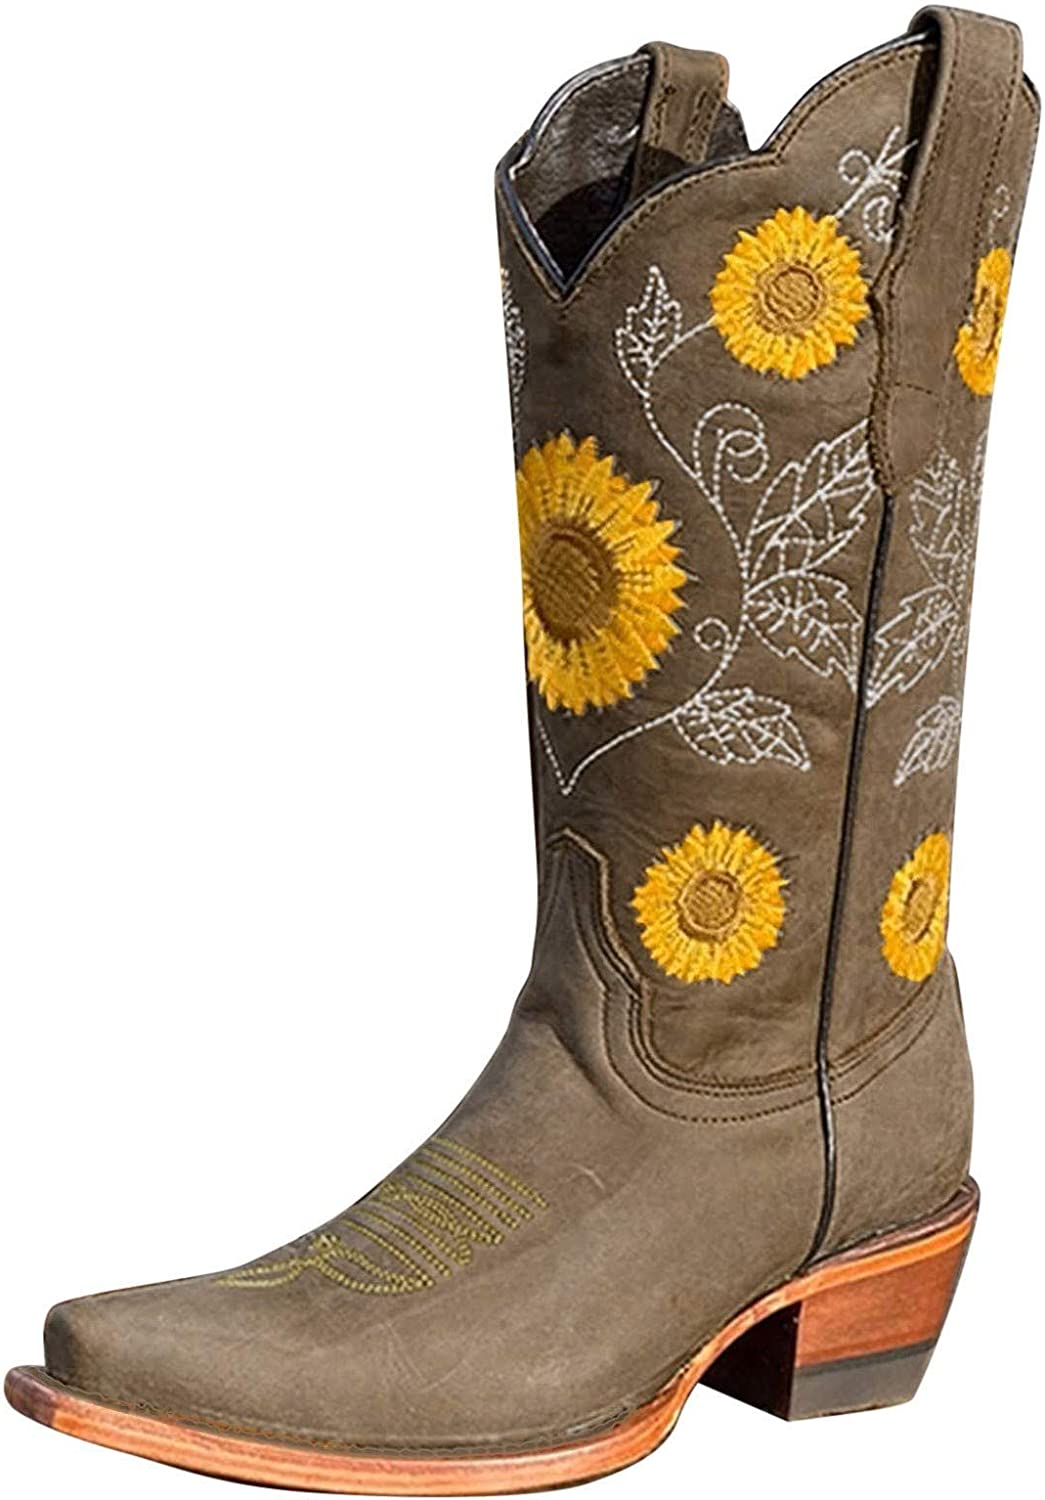 Womens Boots Western Boots Fashion Sunflowers Embroidered Round Toe Mid Calf Chunky Heel Cowboy Boots Comfortable Square Heel Slip-on Casual Shoes